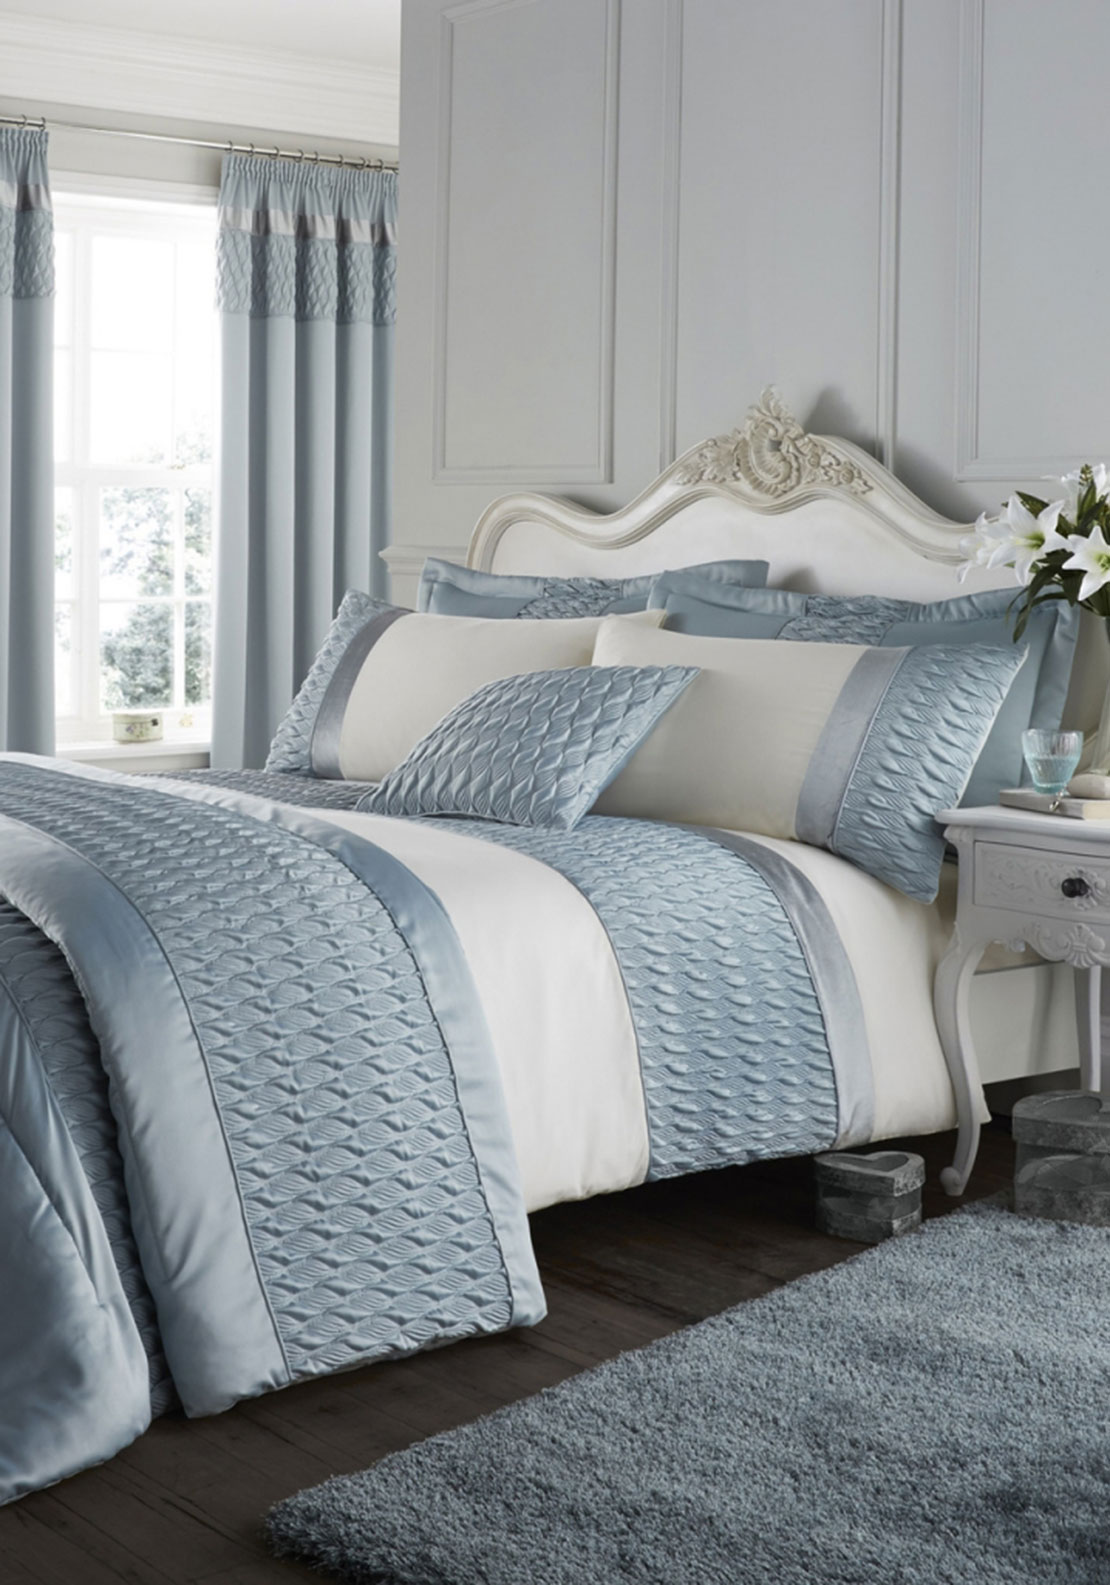 Catherine Lansfield Quilted Luxury Satin Bedspread, 240 x 260cm